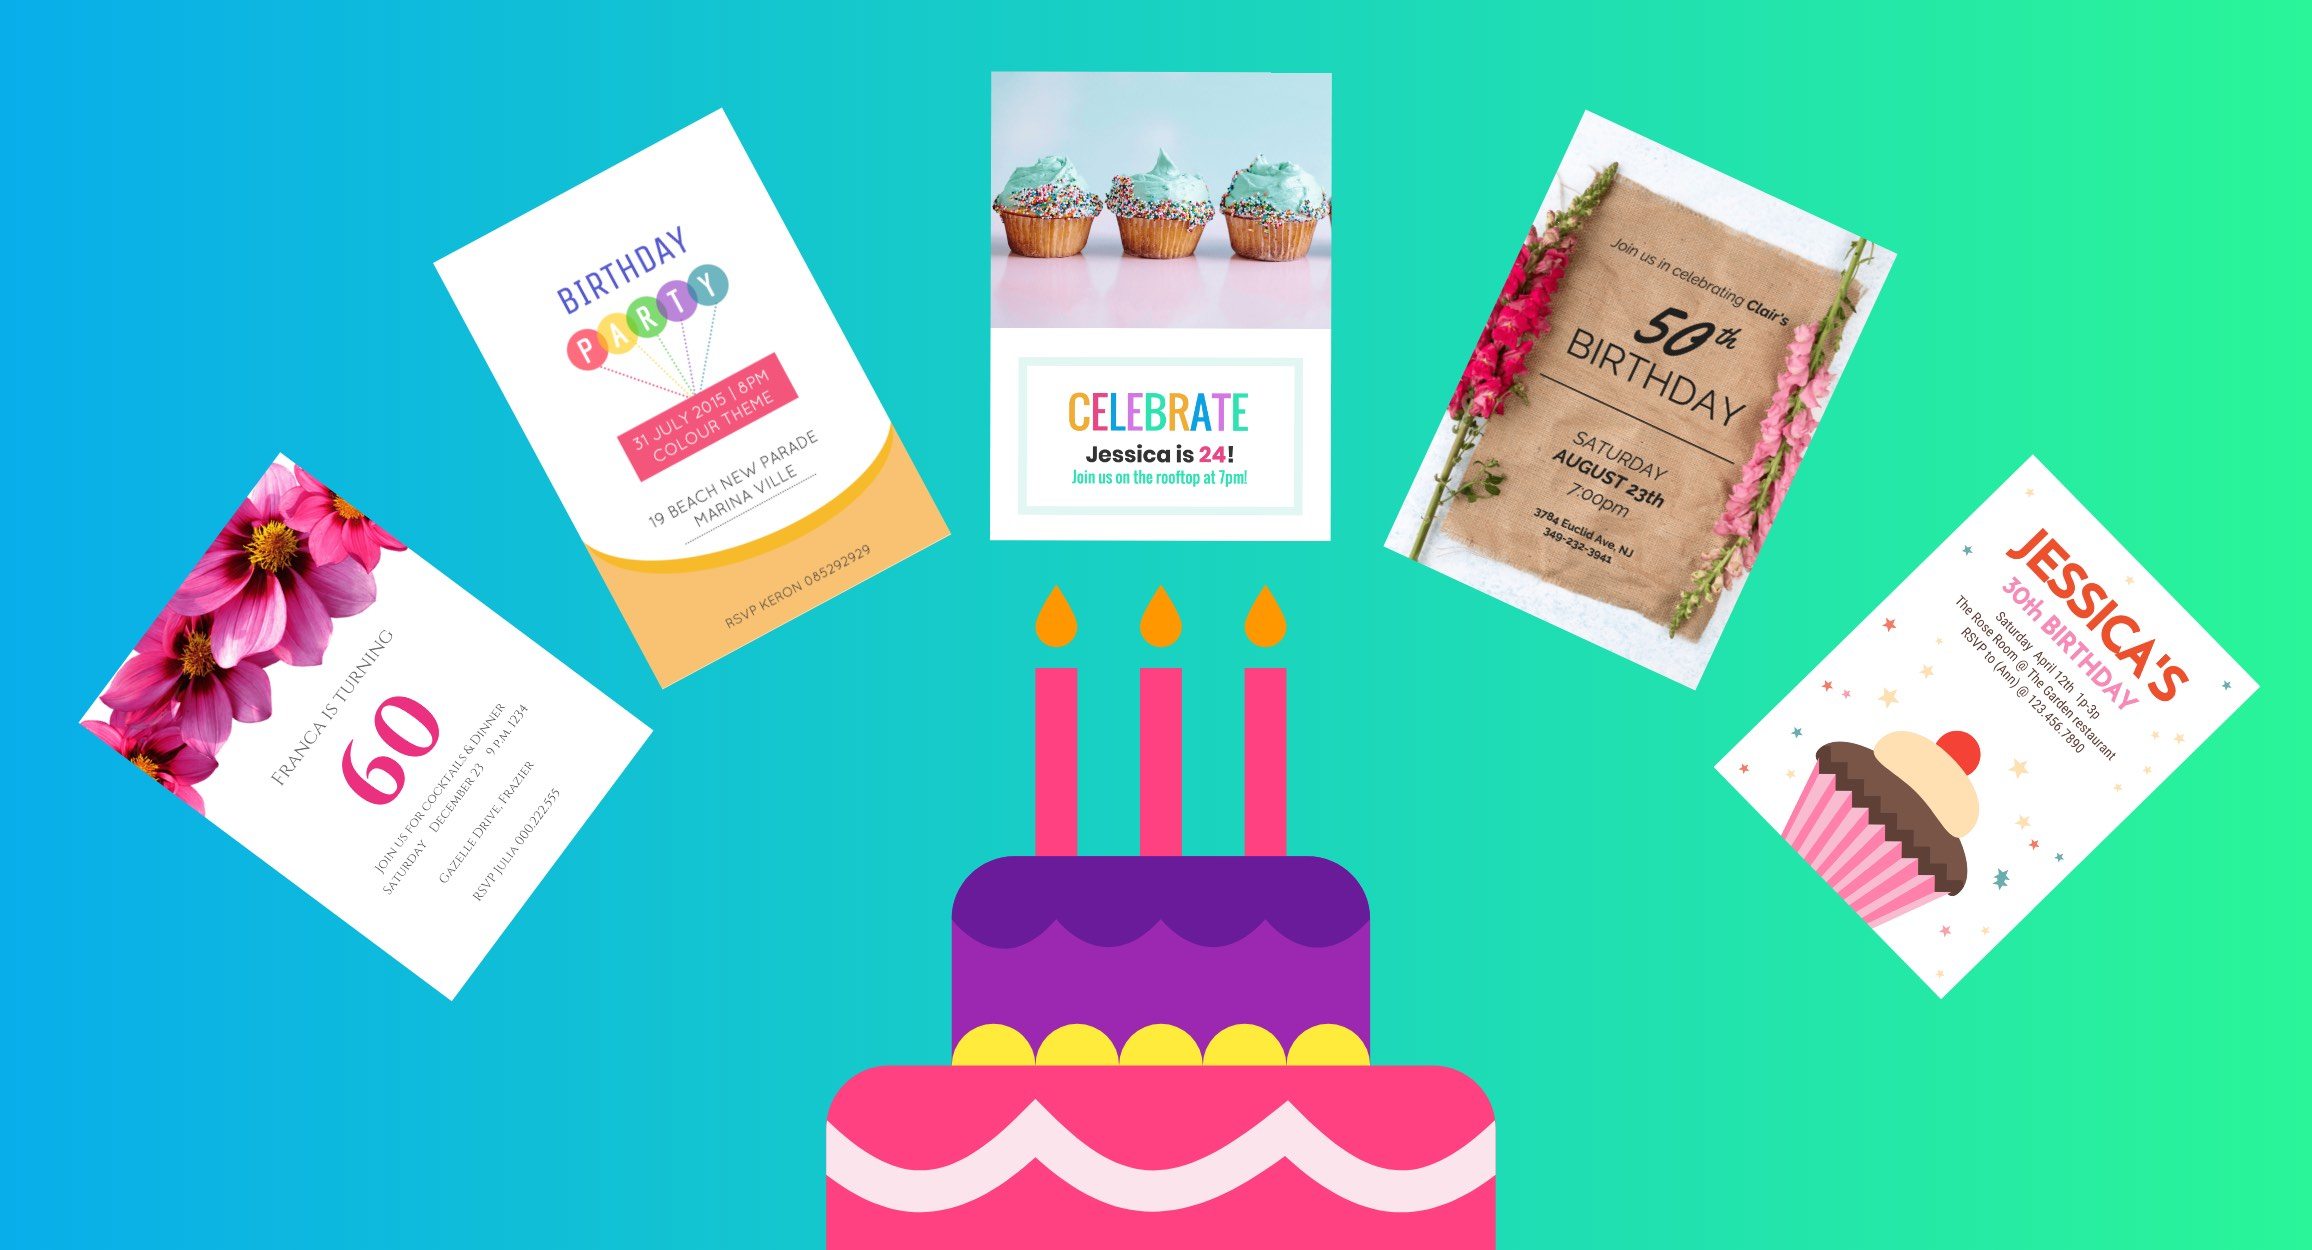 10 Creative Birthday Invitation Card Design Tips [+Templates